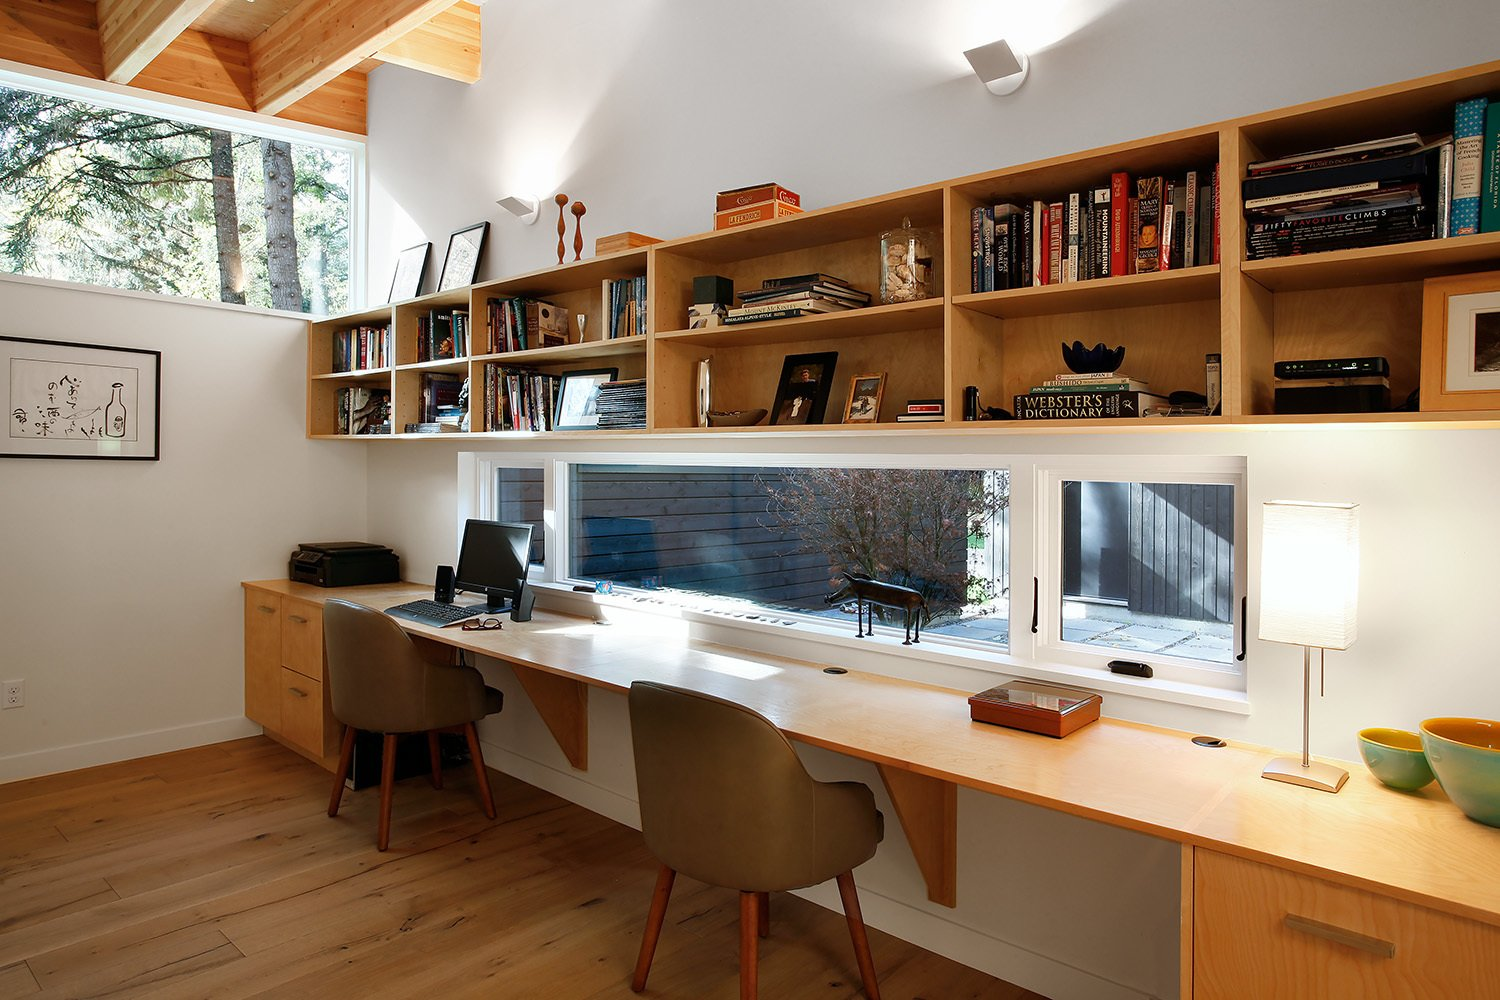 """The roof structure is exposed in every room of the house, which leads the eye to connect all of the rooms together, making the house seem bigger than it really is,"" Hutchison says. Dunn Lumber supplied the laminate shelves for the study.  Shining Examples of Clerestory Windows by Luke Hopping from Courtyard House on a River"